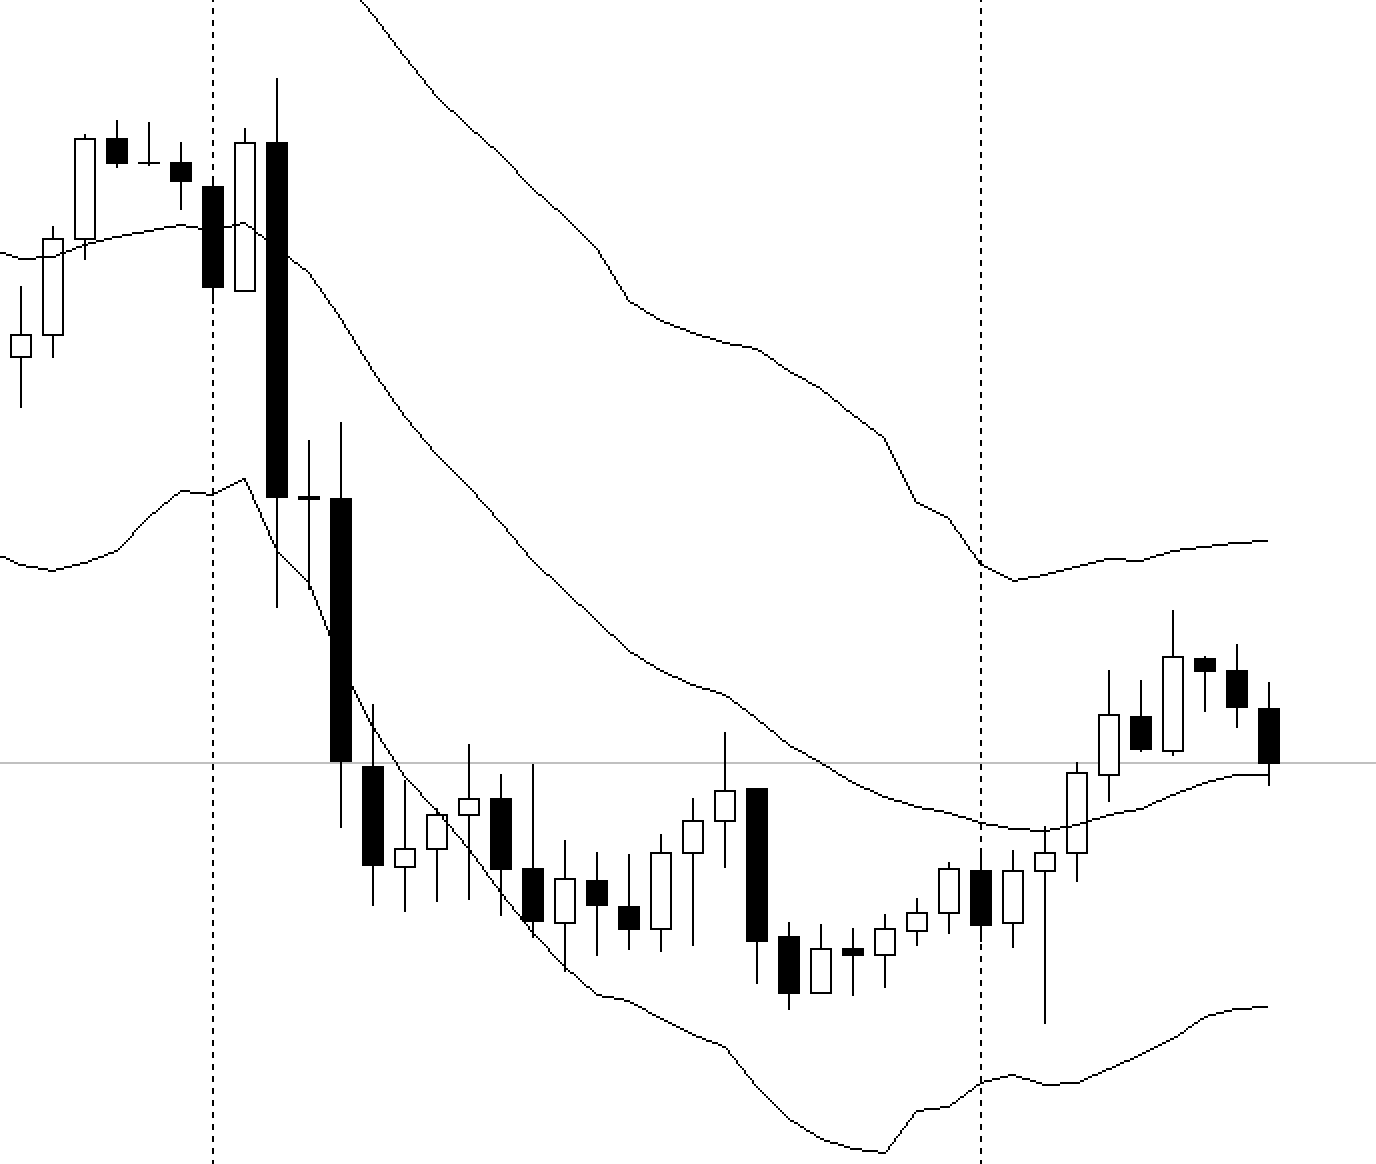 price-action-chuyen-sau-traderviet5.